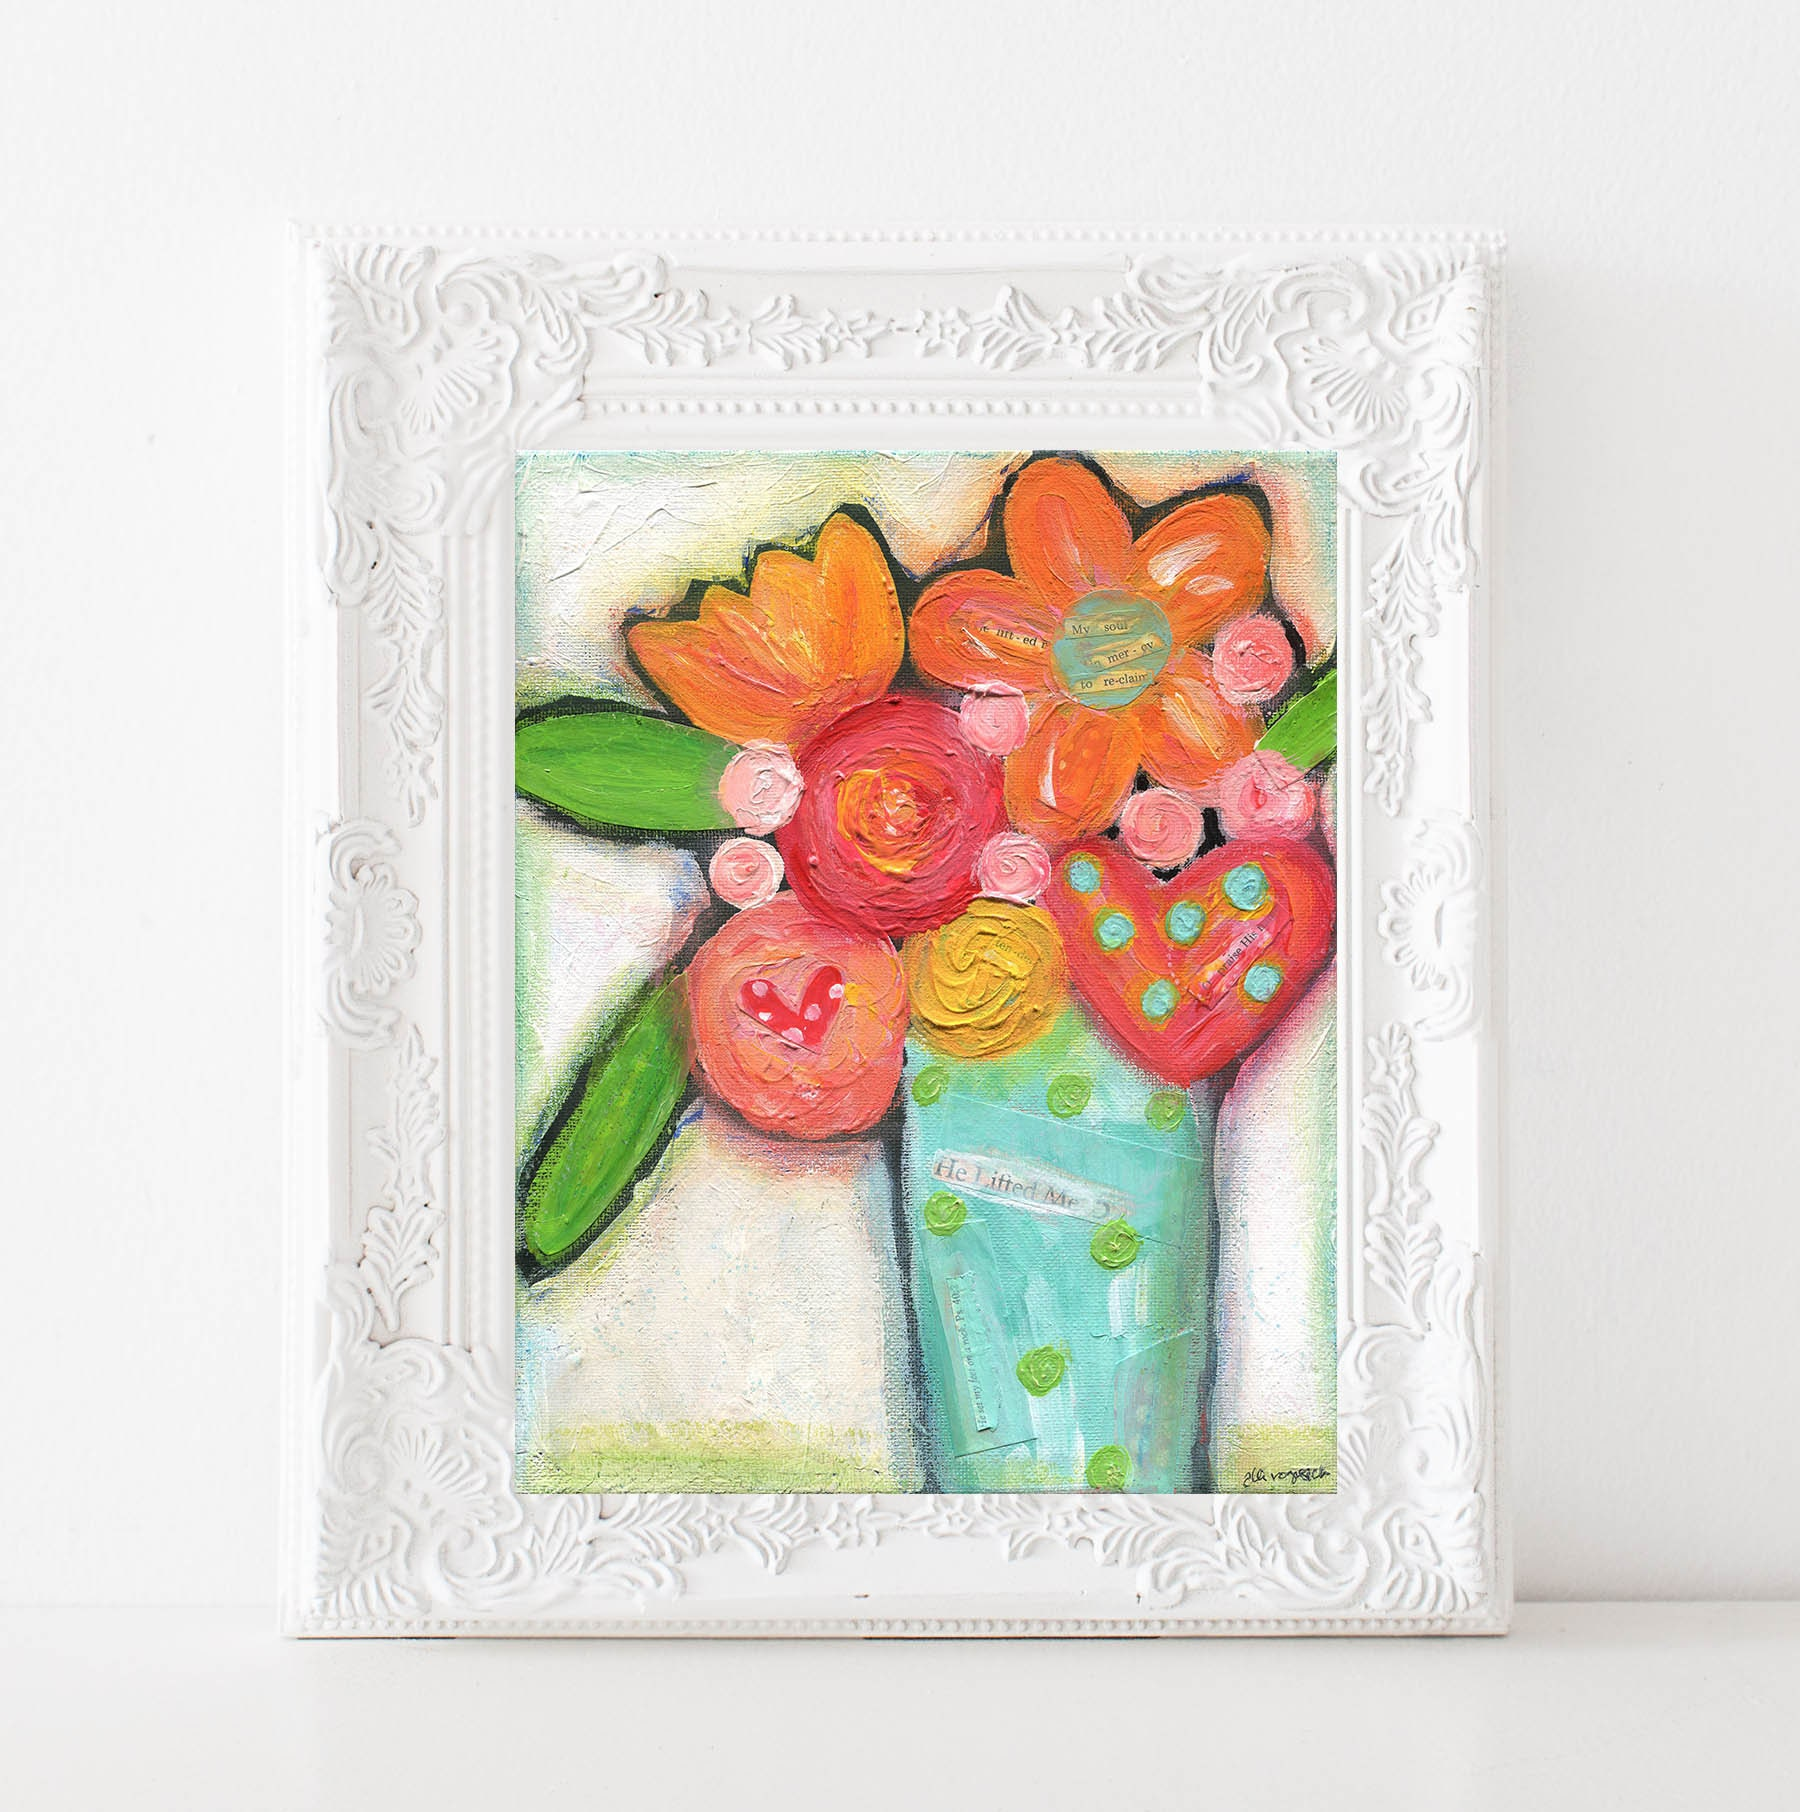 Floral Nursery Decor Bright Colorful Flower Painting Christian Wall Flowers In Vase Original Acrylic Art Print 8x10 11x14 Prints